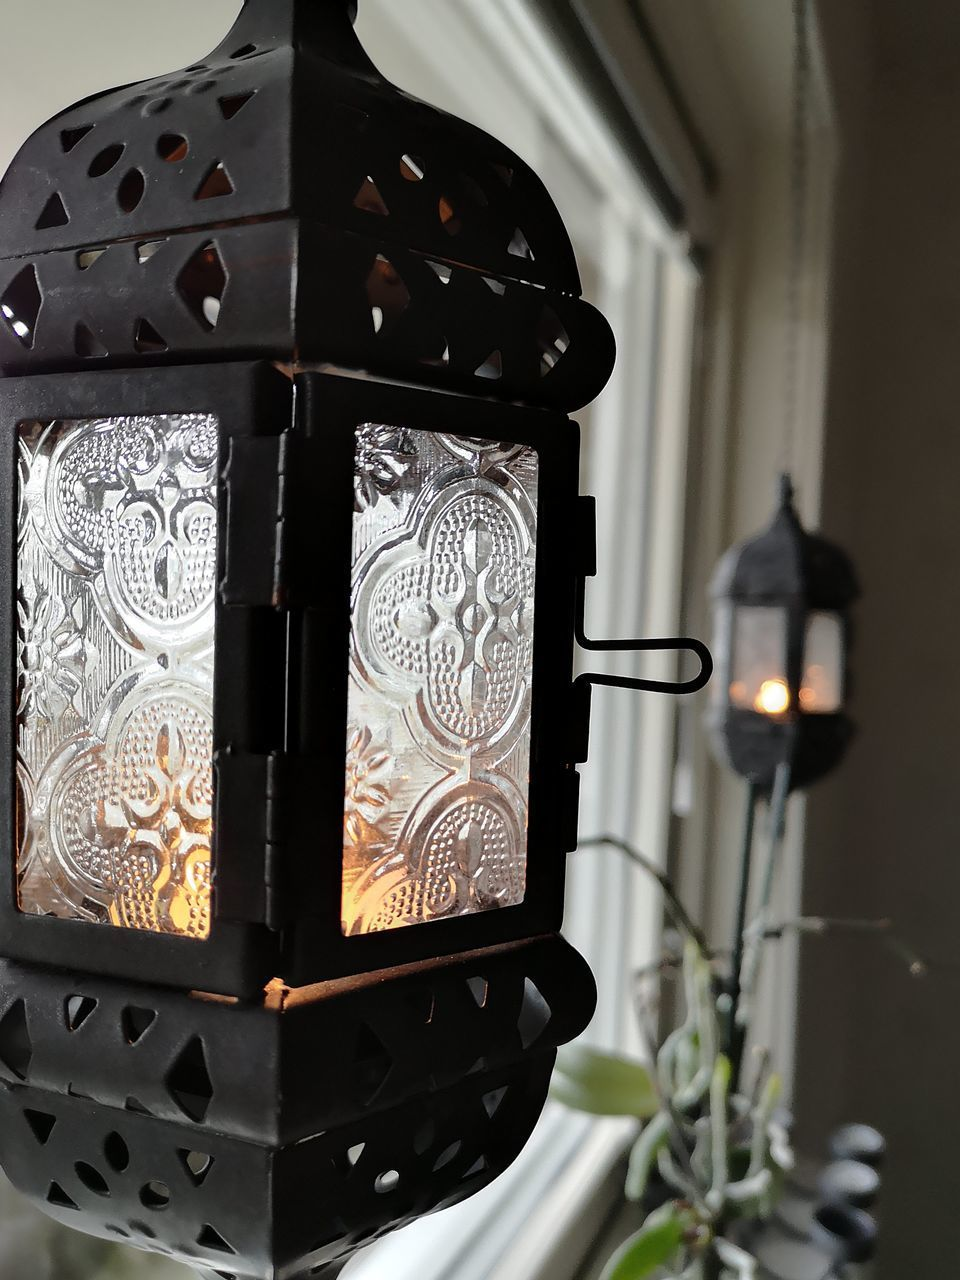 lighting equipment, indoors, no people, close-up, illuminated, pattern, electric lamp, home interior, design, focus on foreground, black color, metal, heat - temperature, technology, burning, glowing, art and craft, floral pattern, candle, ornate